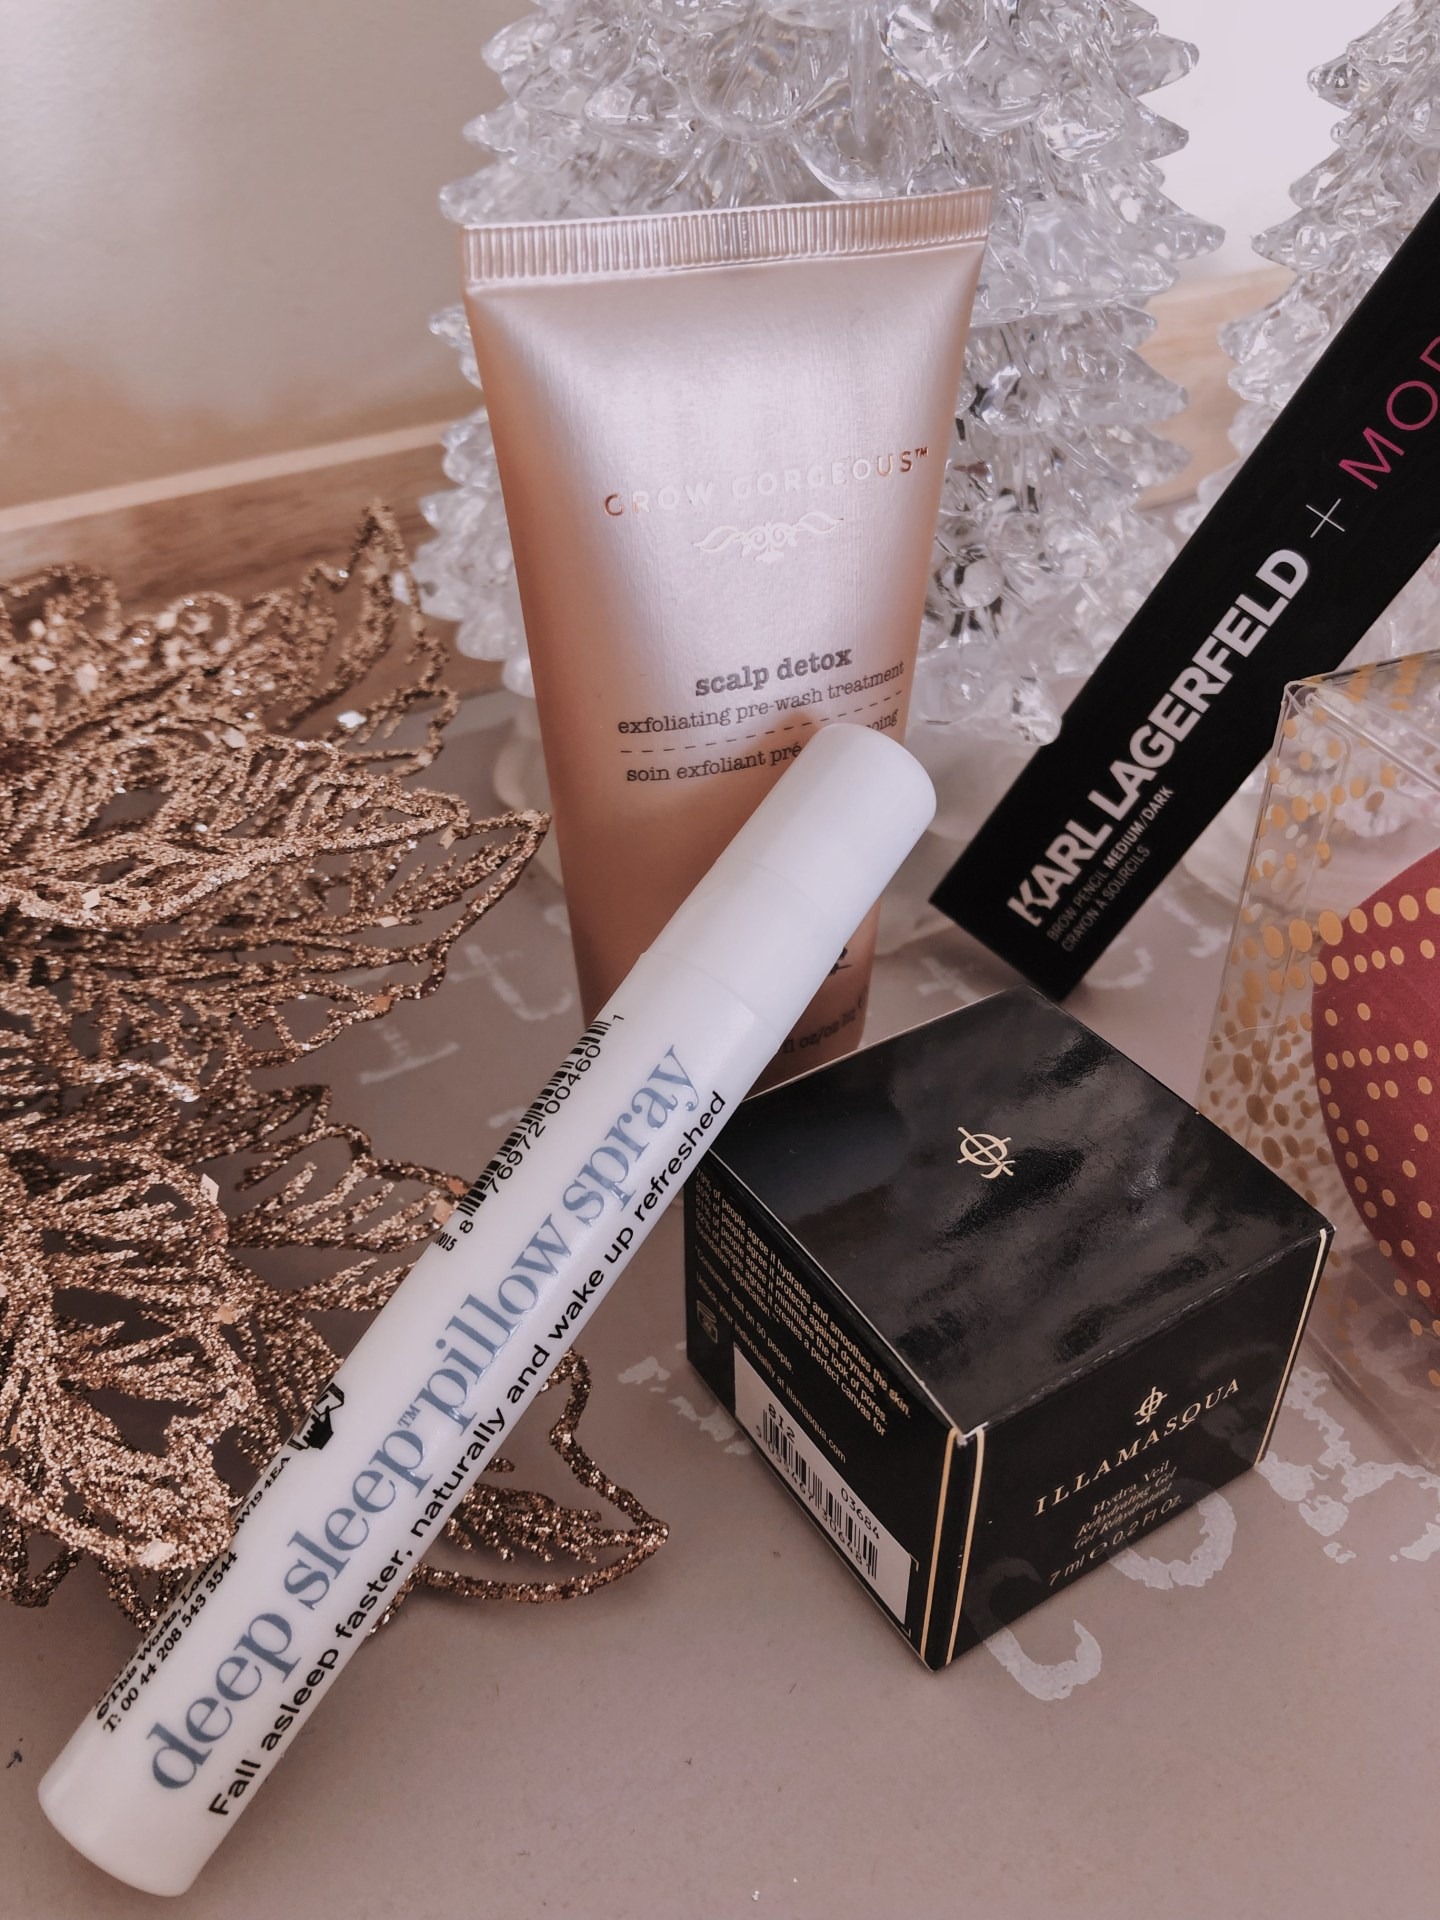 December 2018 Look Fantastic Subscription Box